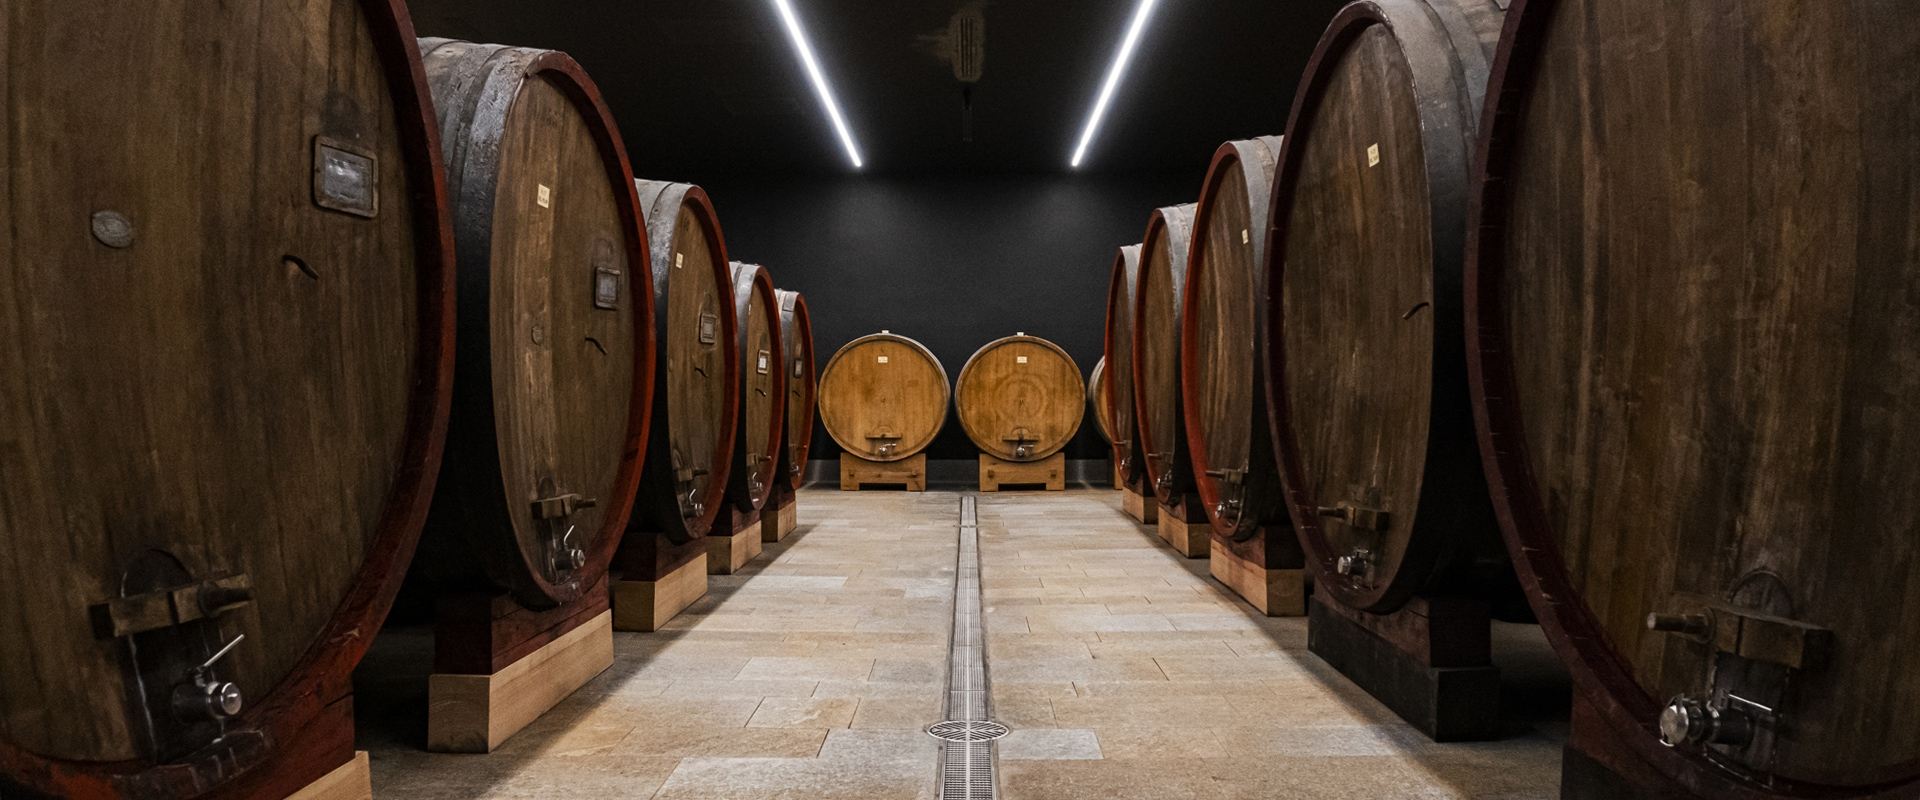 Cantina Nervi: a spectacular winery between history, architecture and innovation